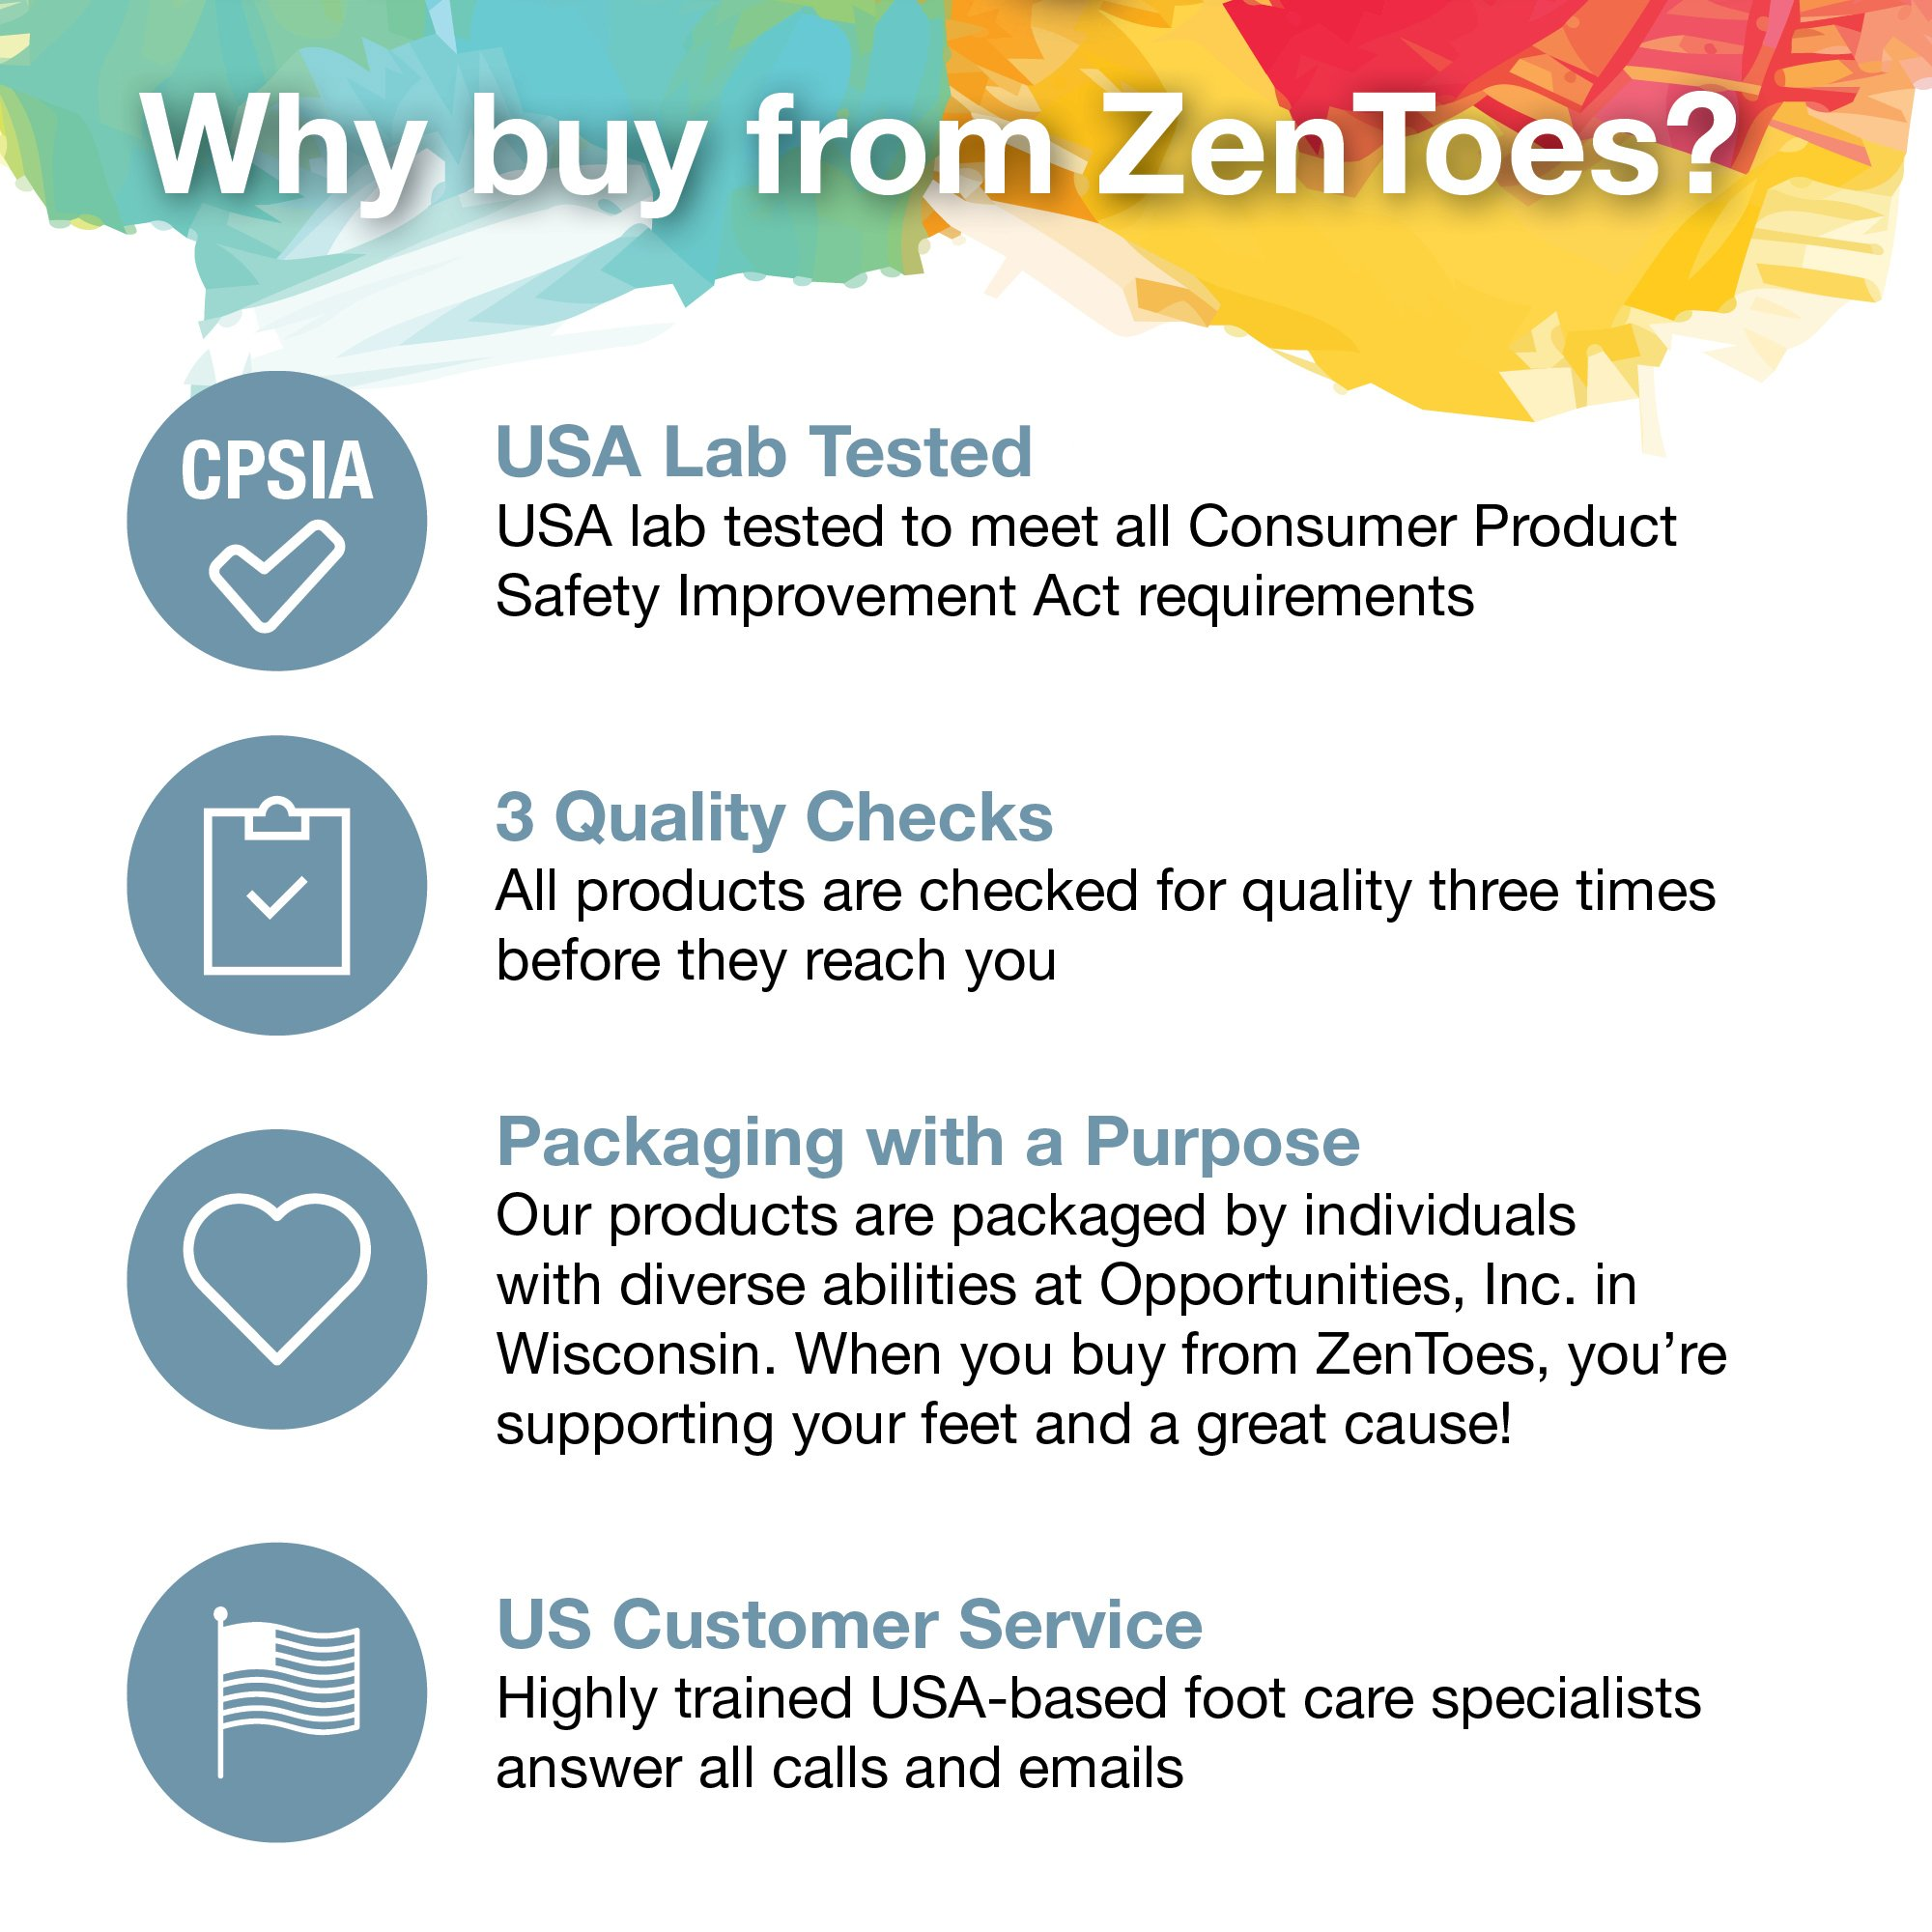 ZenToes Hammer Toe Straightener and Corrector 4 Pack Soft Gel Crests Splints | Reduce Foot Pain, Prevent Overlap | Flexible Footcare Treatment | Stain, Odor Resistant (Beige) by ZenToes (Image #6)